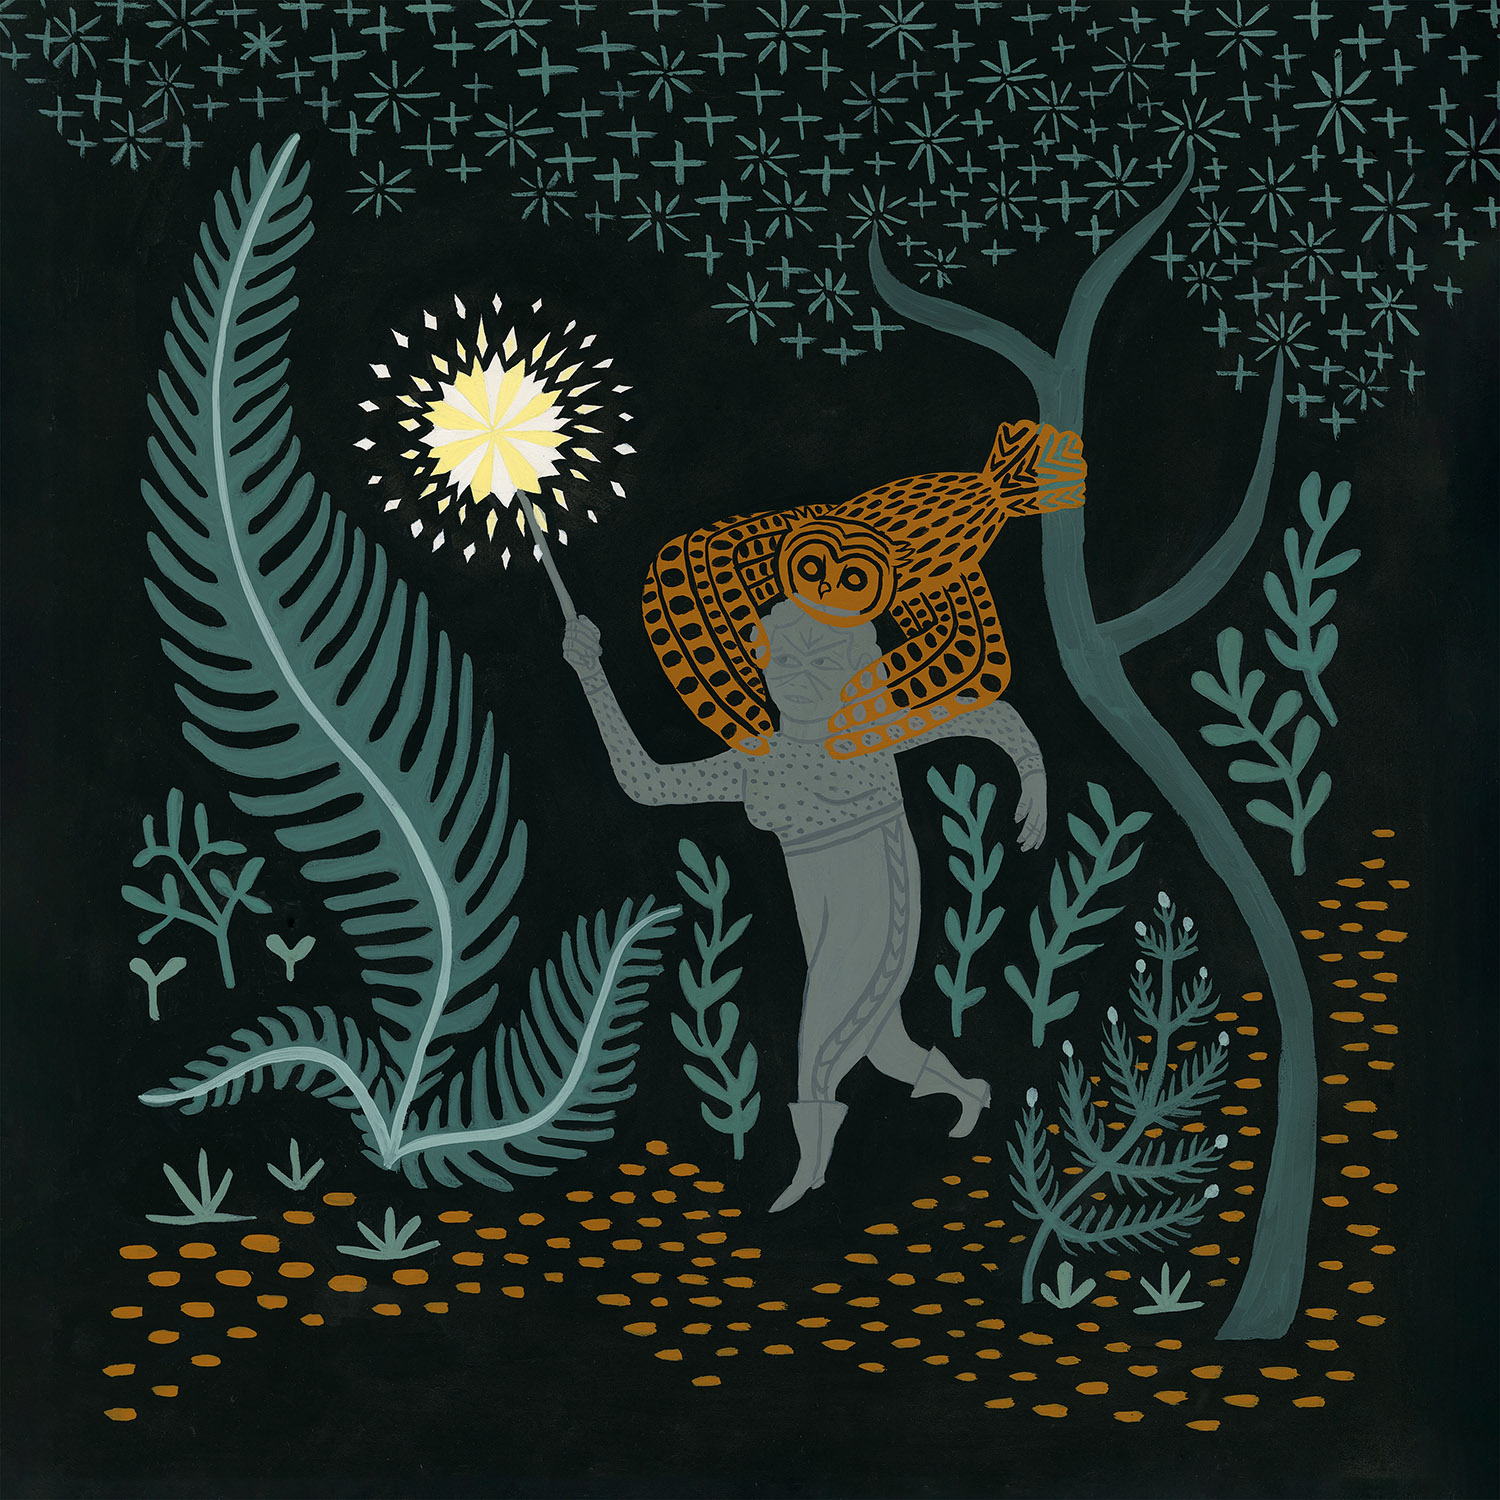 Susanna 'Wilderness' limited edition screenprint